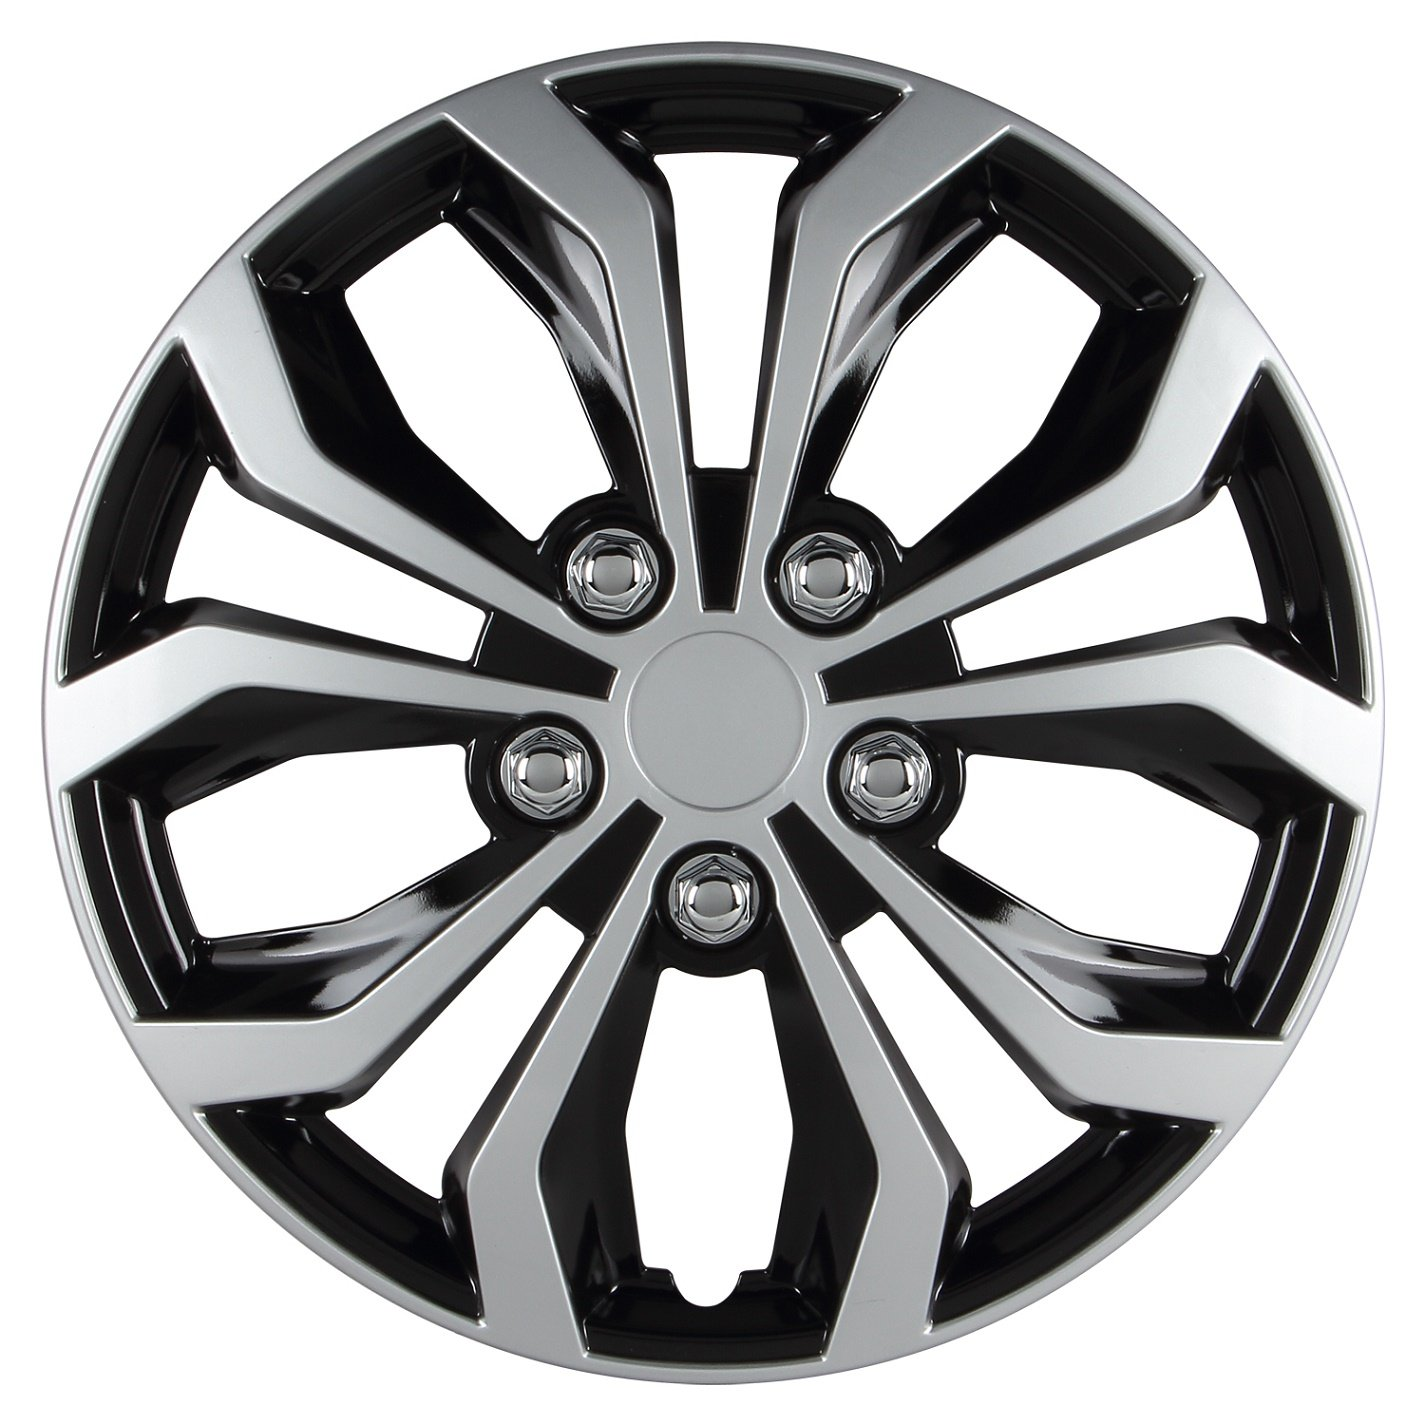 Pilot WH553-16S-BS Universal Fit Spyder Black/Silver Finish 16 Inch Wheel Covers - Set of 4 by Pilot Automotive (Image #1)